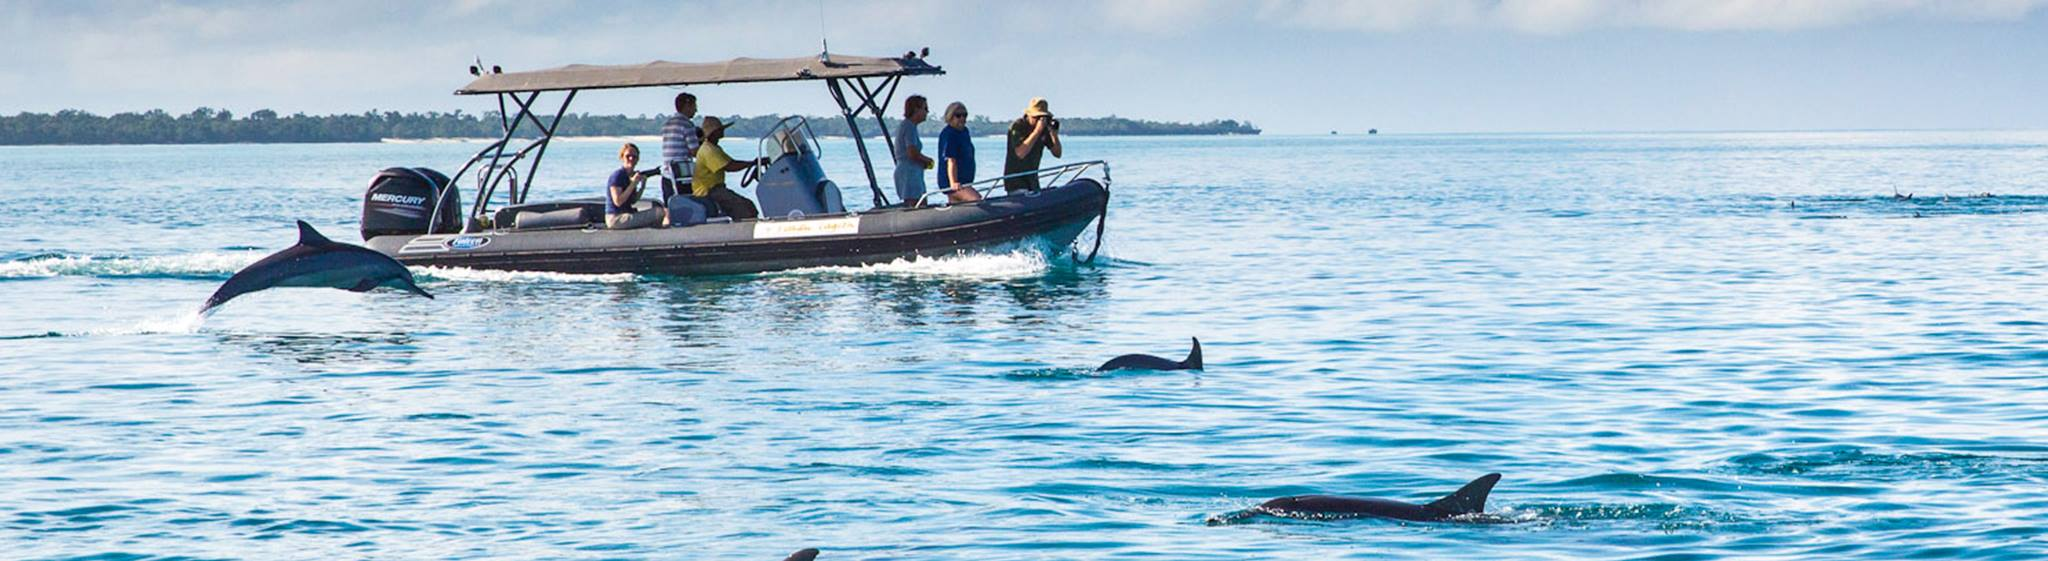 Kizimkazi Dolphin Tour - Safanta Tours & Travel Company Limited